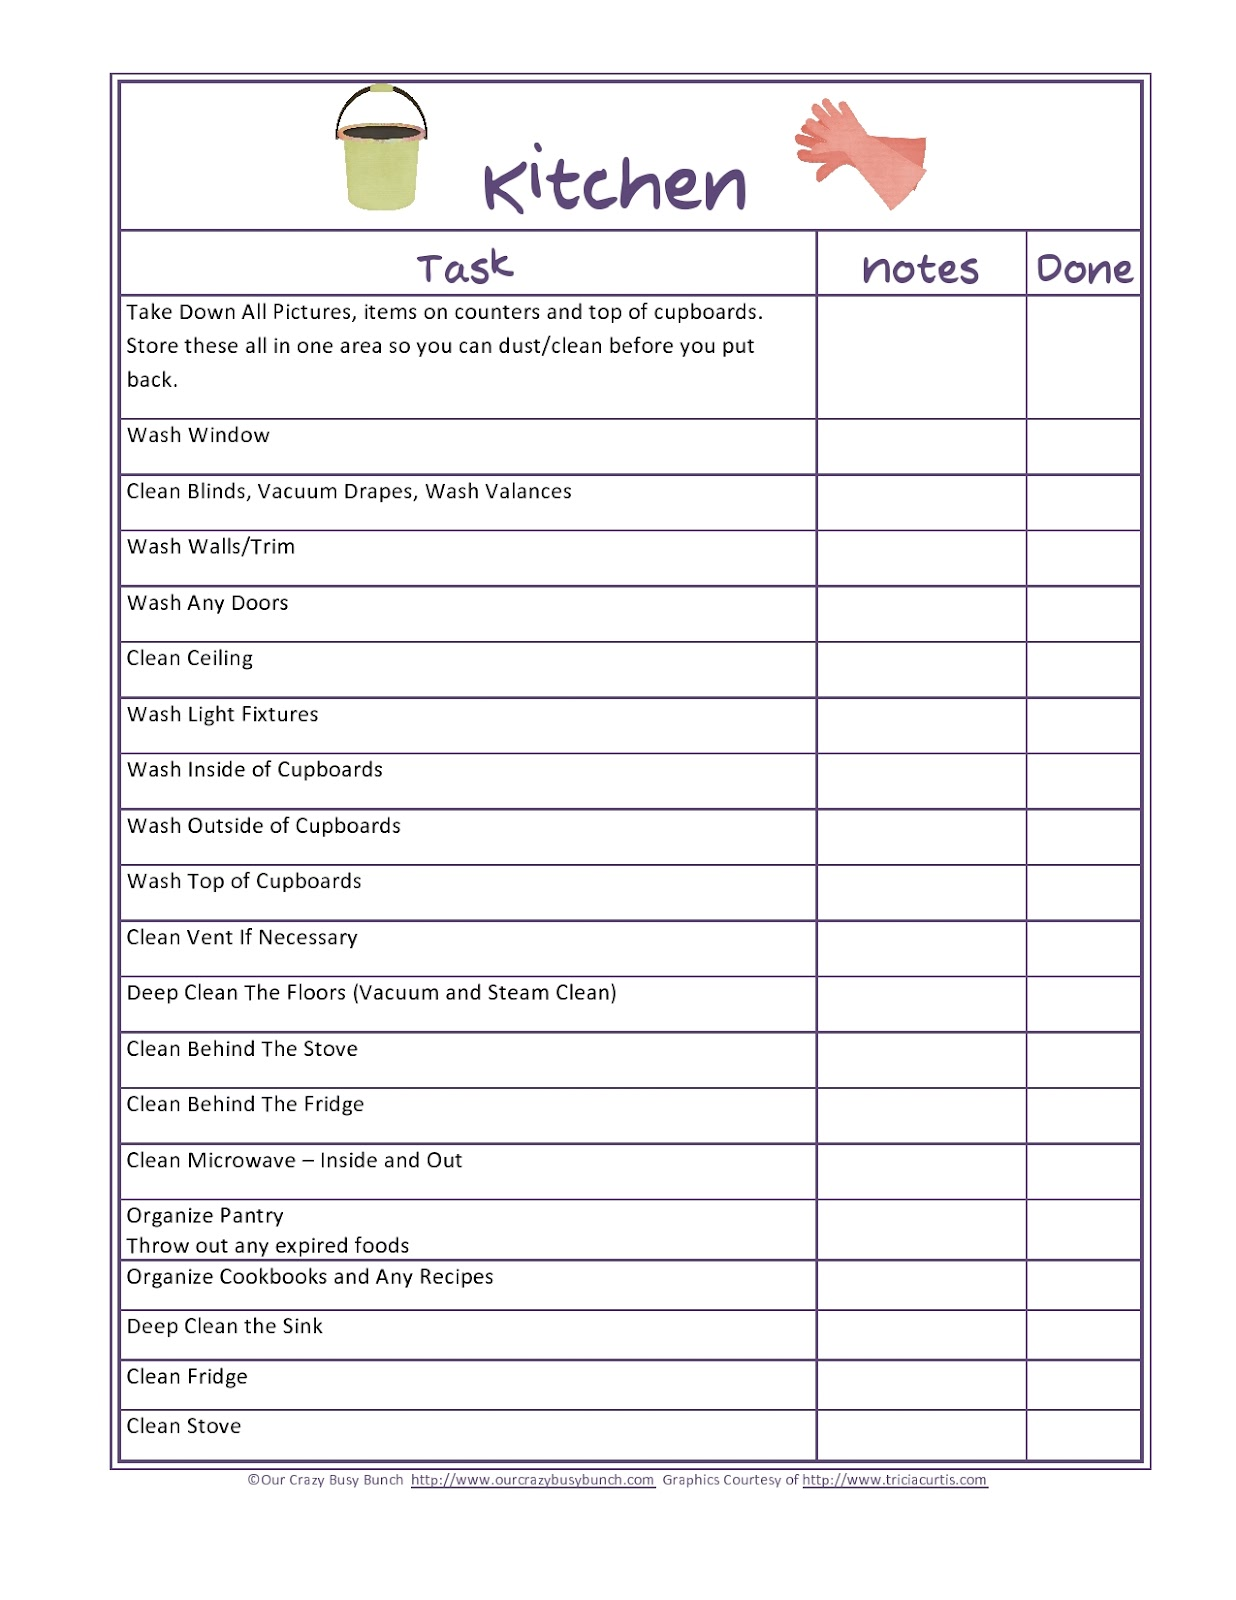 worksheets kitchen safety worksheets waytoohuman free worksheets for kids printables. Black Bedroom Furniture Sets. Home Design Ideas